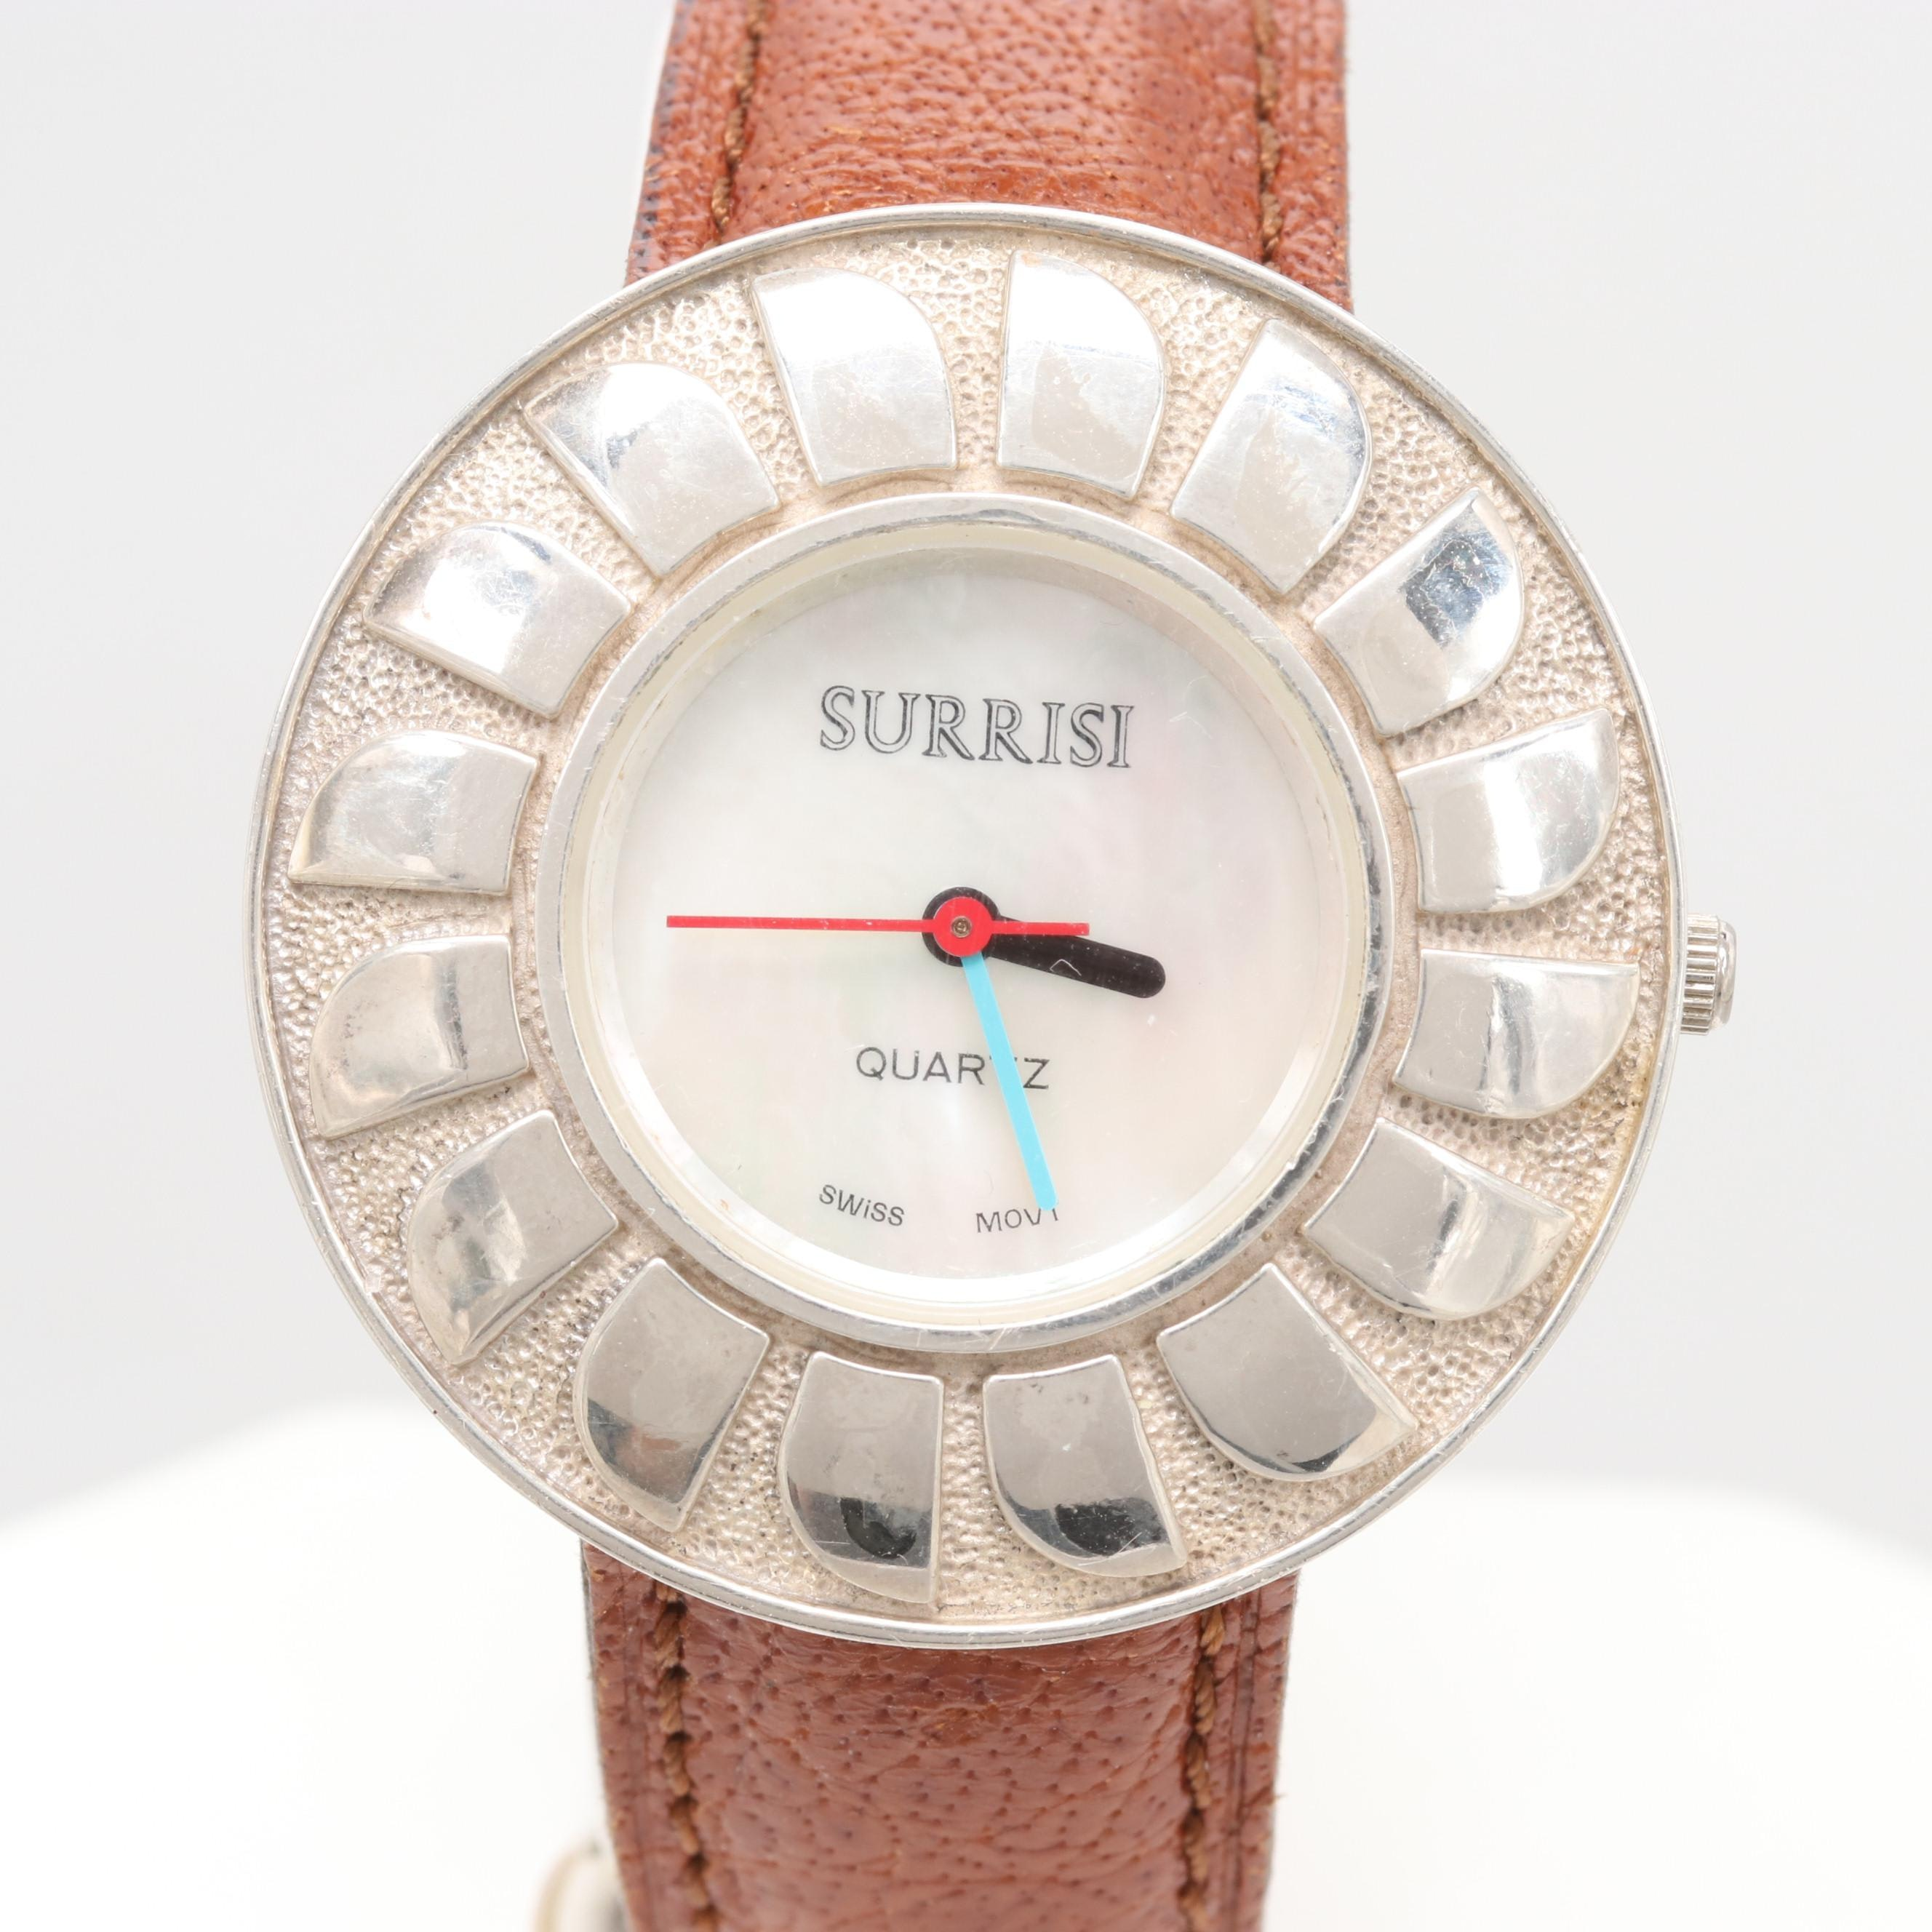 Surrisi Sterling Silver Mother of Pearl Wristwatch